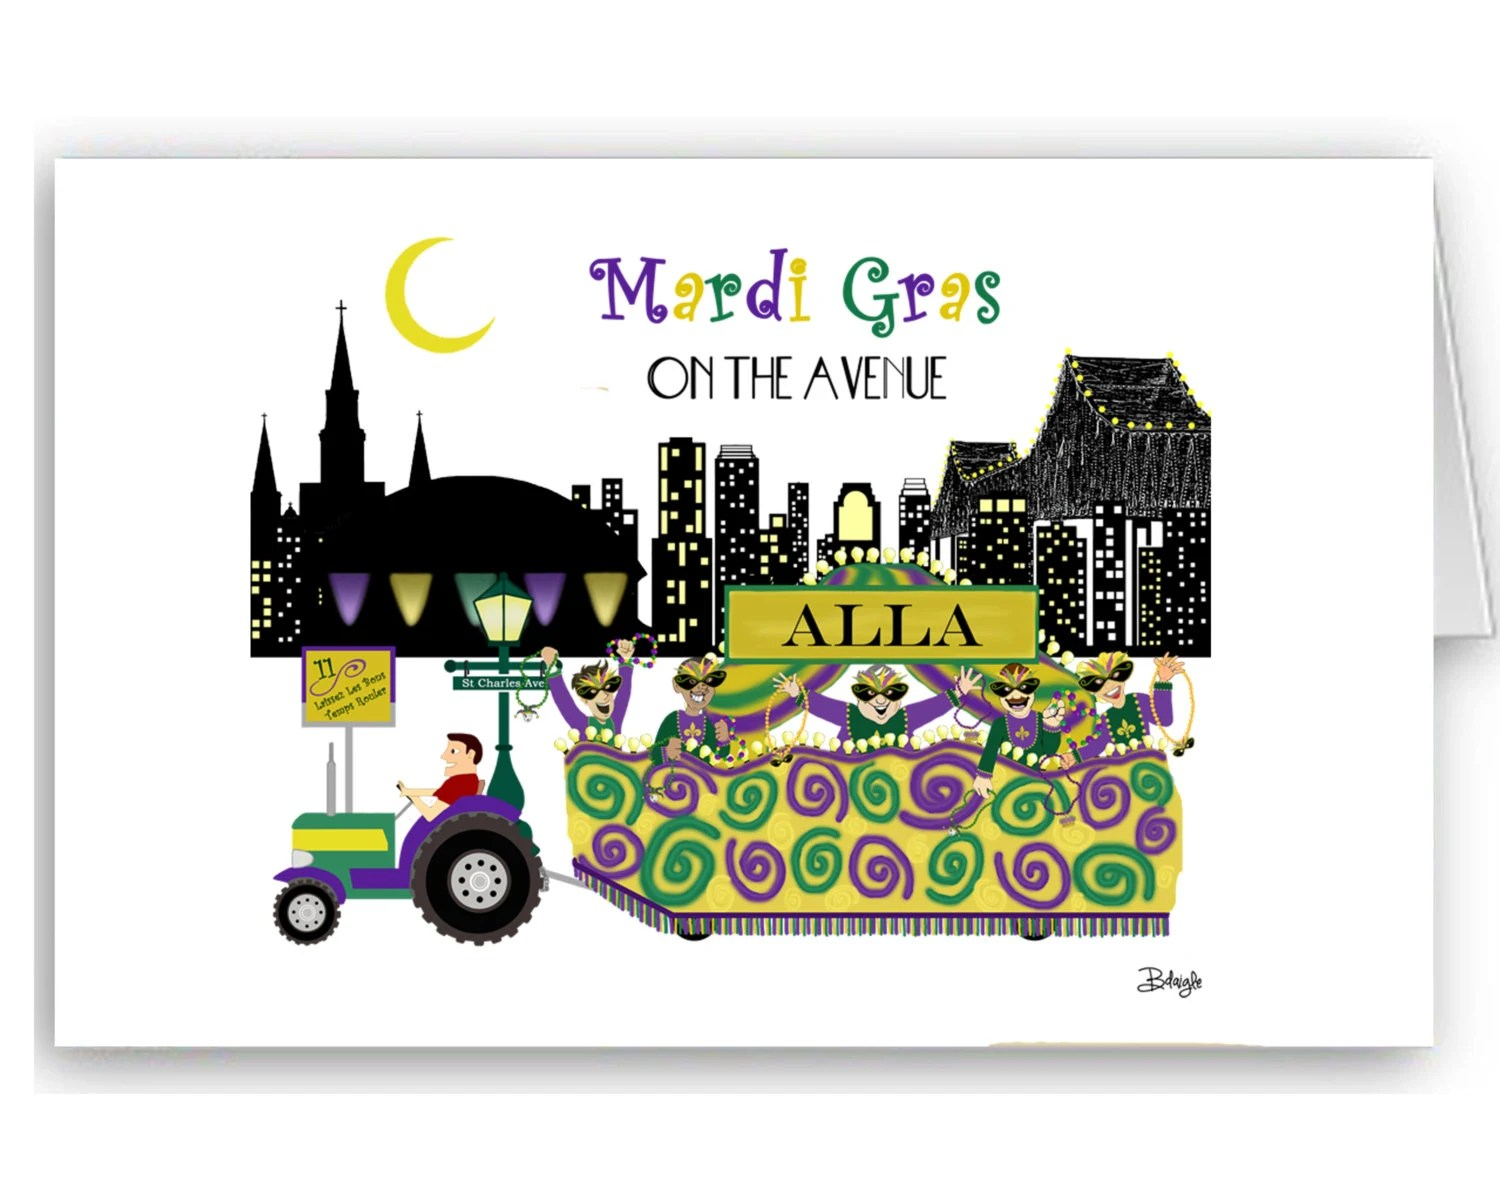 Mardi Gras Float - Card Set - New Orleans Graphics: MG on Ave - (10) 5x6.7 in Folded Cards - Men's Krewes - 13 Krewes from which to choose